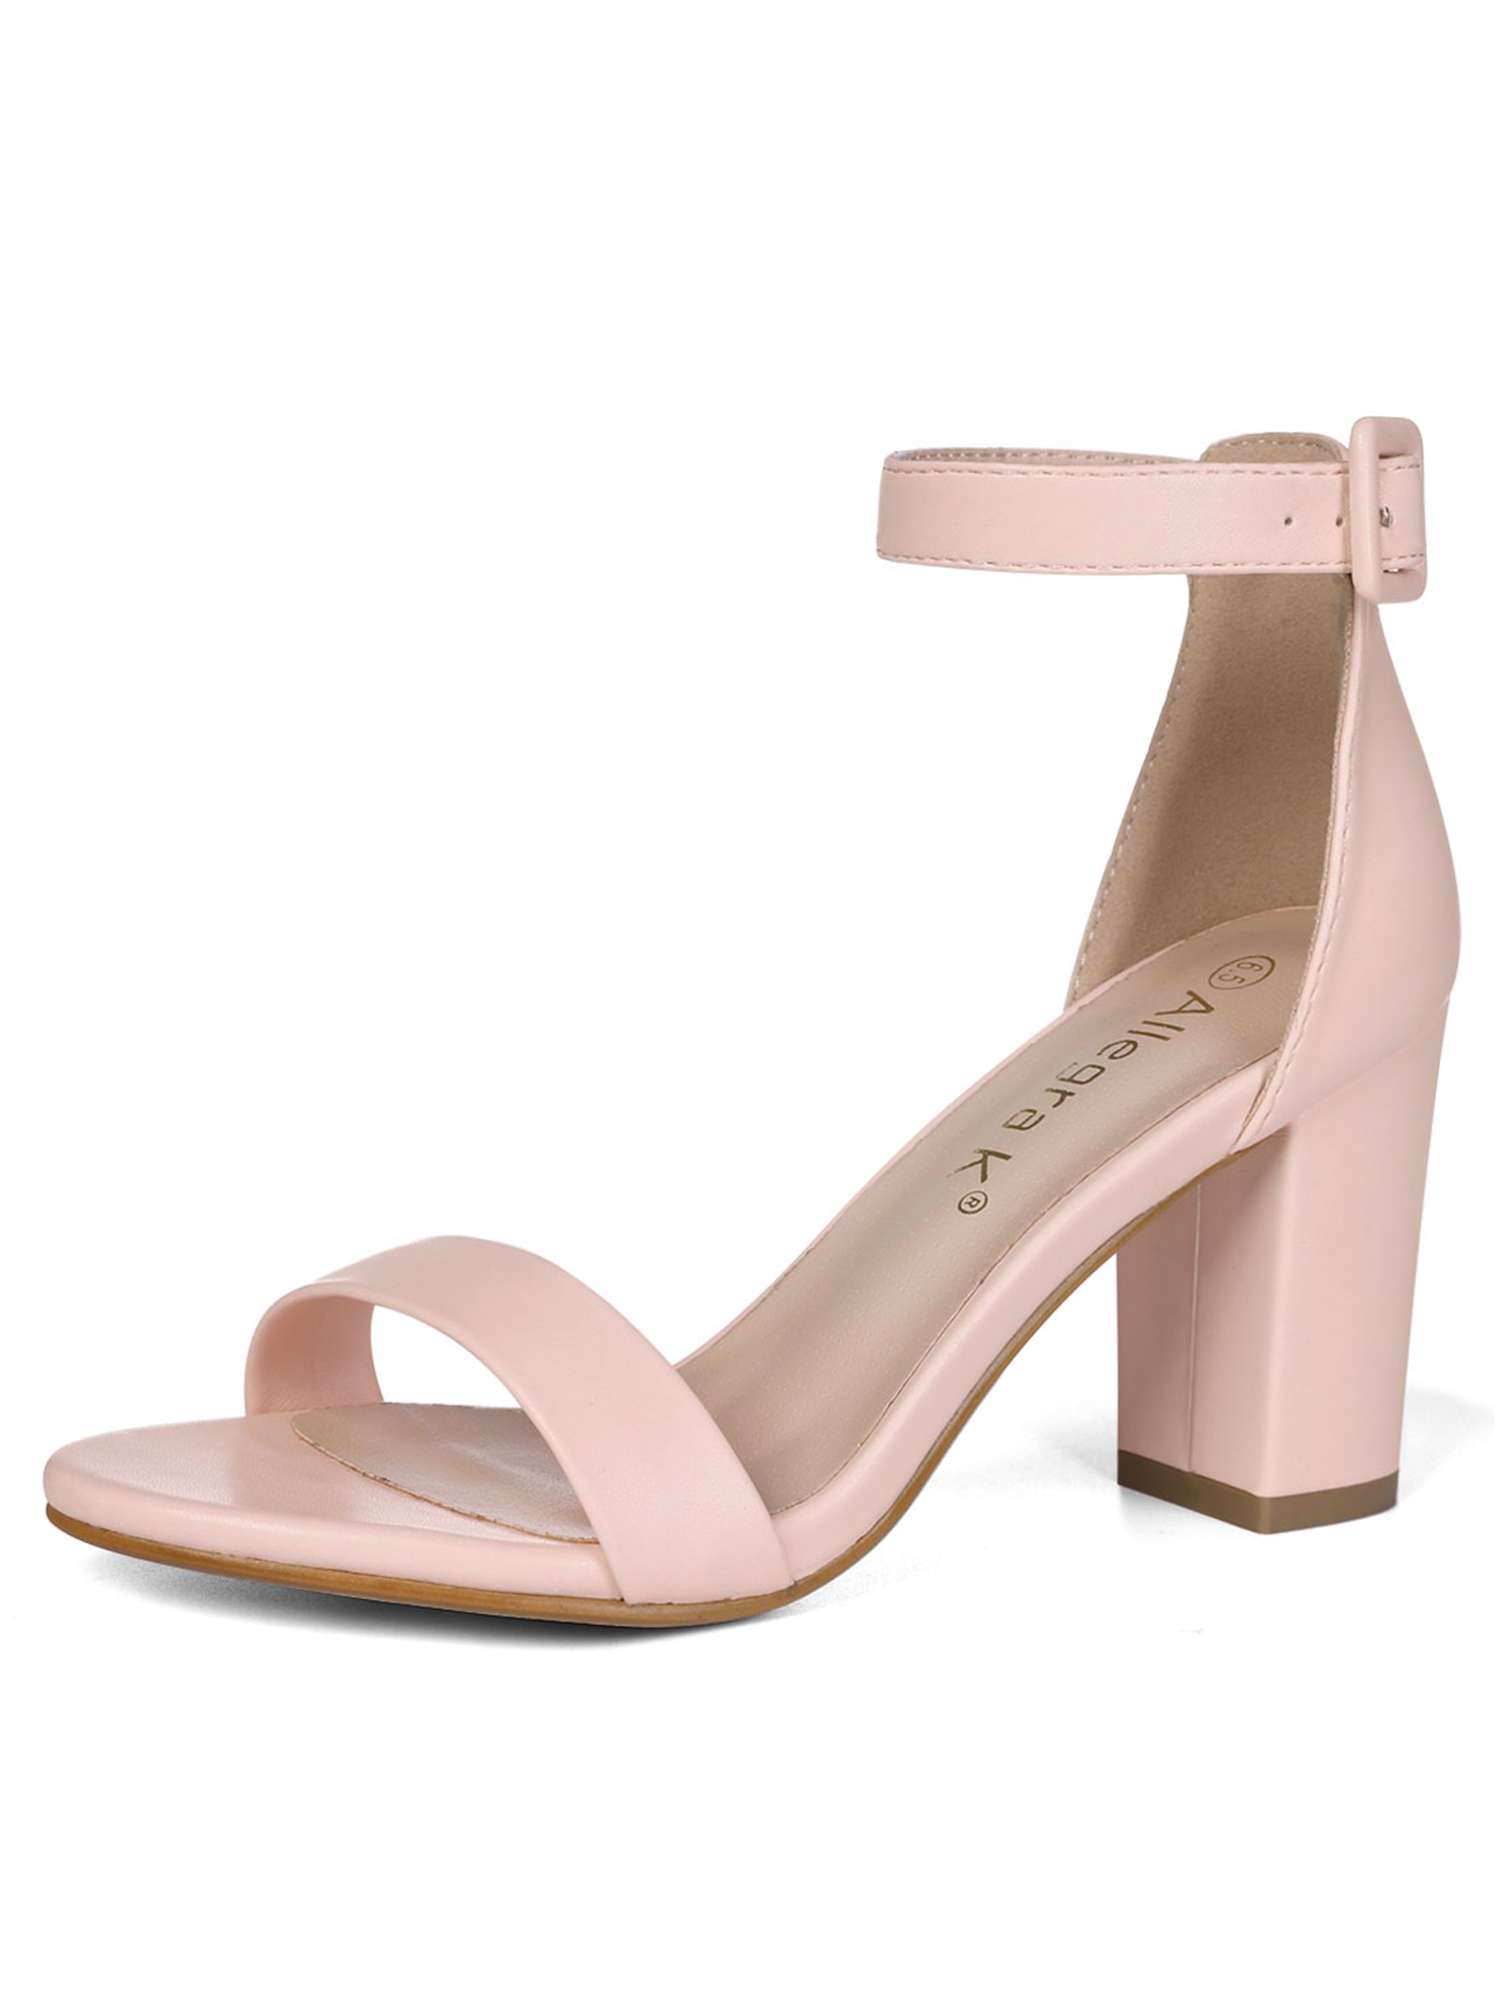 ad69b85f6727 Unique Bargains Women s Chunky High Heeled Open Toe Ankle ...